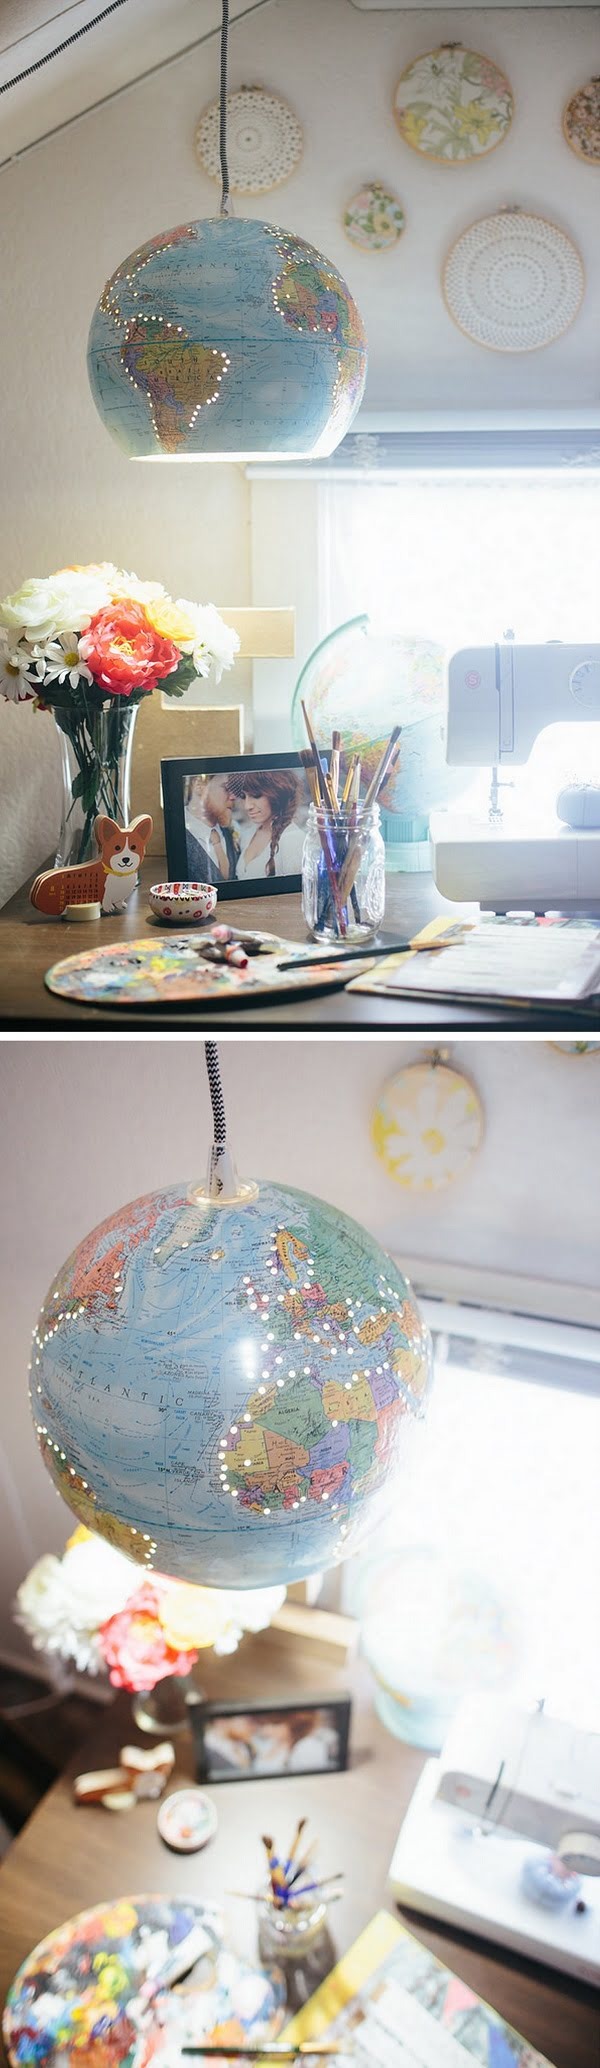 Check out the tutorial how to make this cute  globe chandelier